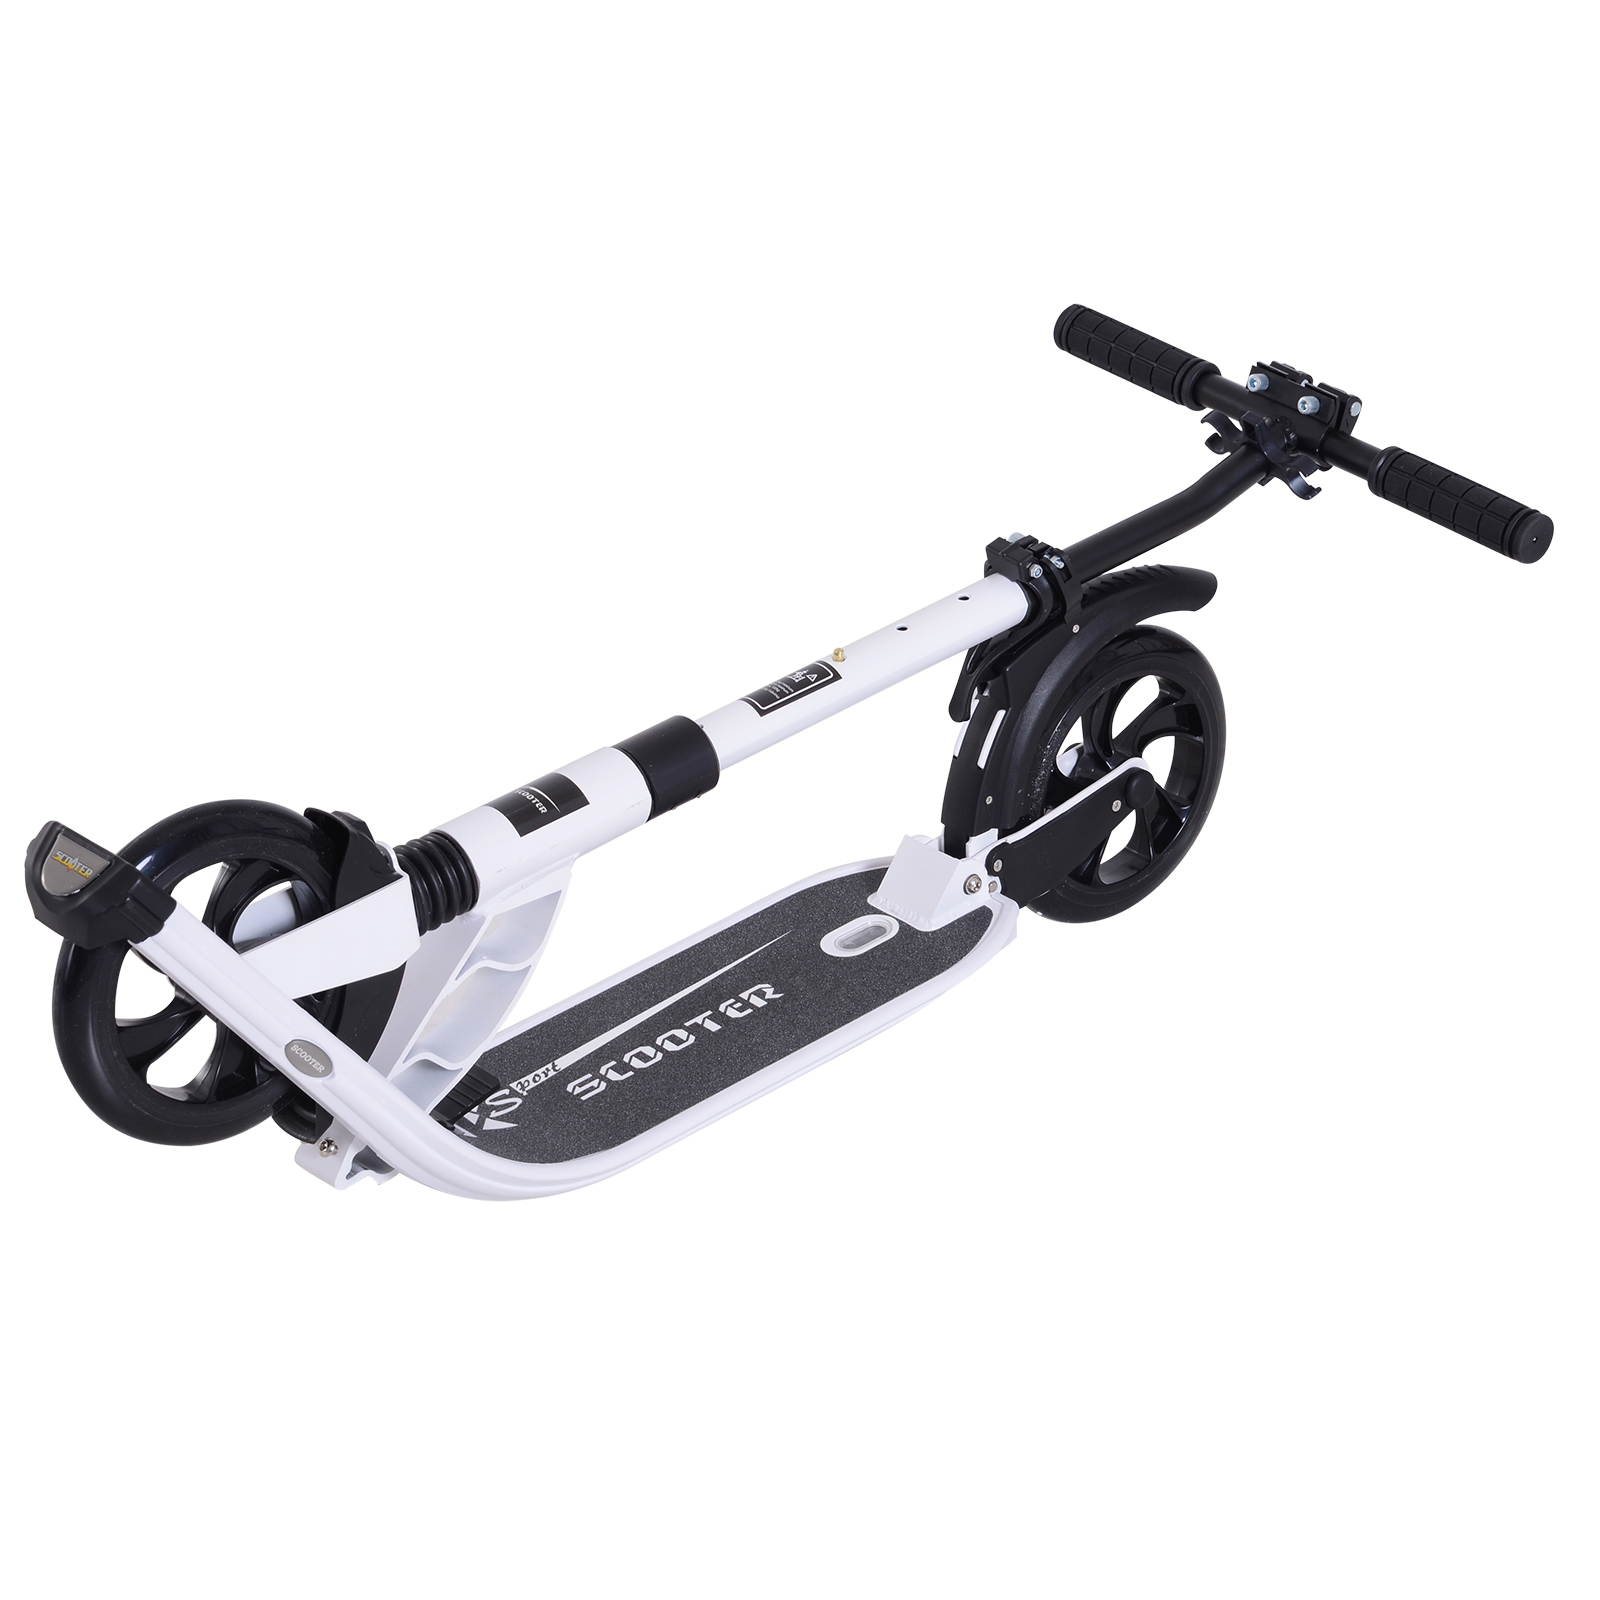 Teens-Adult-Folding-Electric-Scooter-Teenager-Rider-With-Brakes-and-Kickstand miniature 27